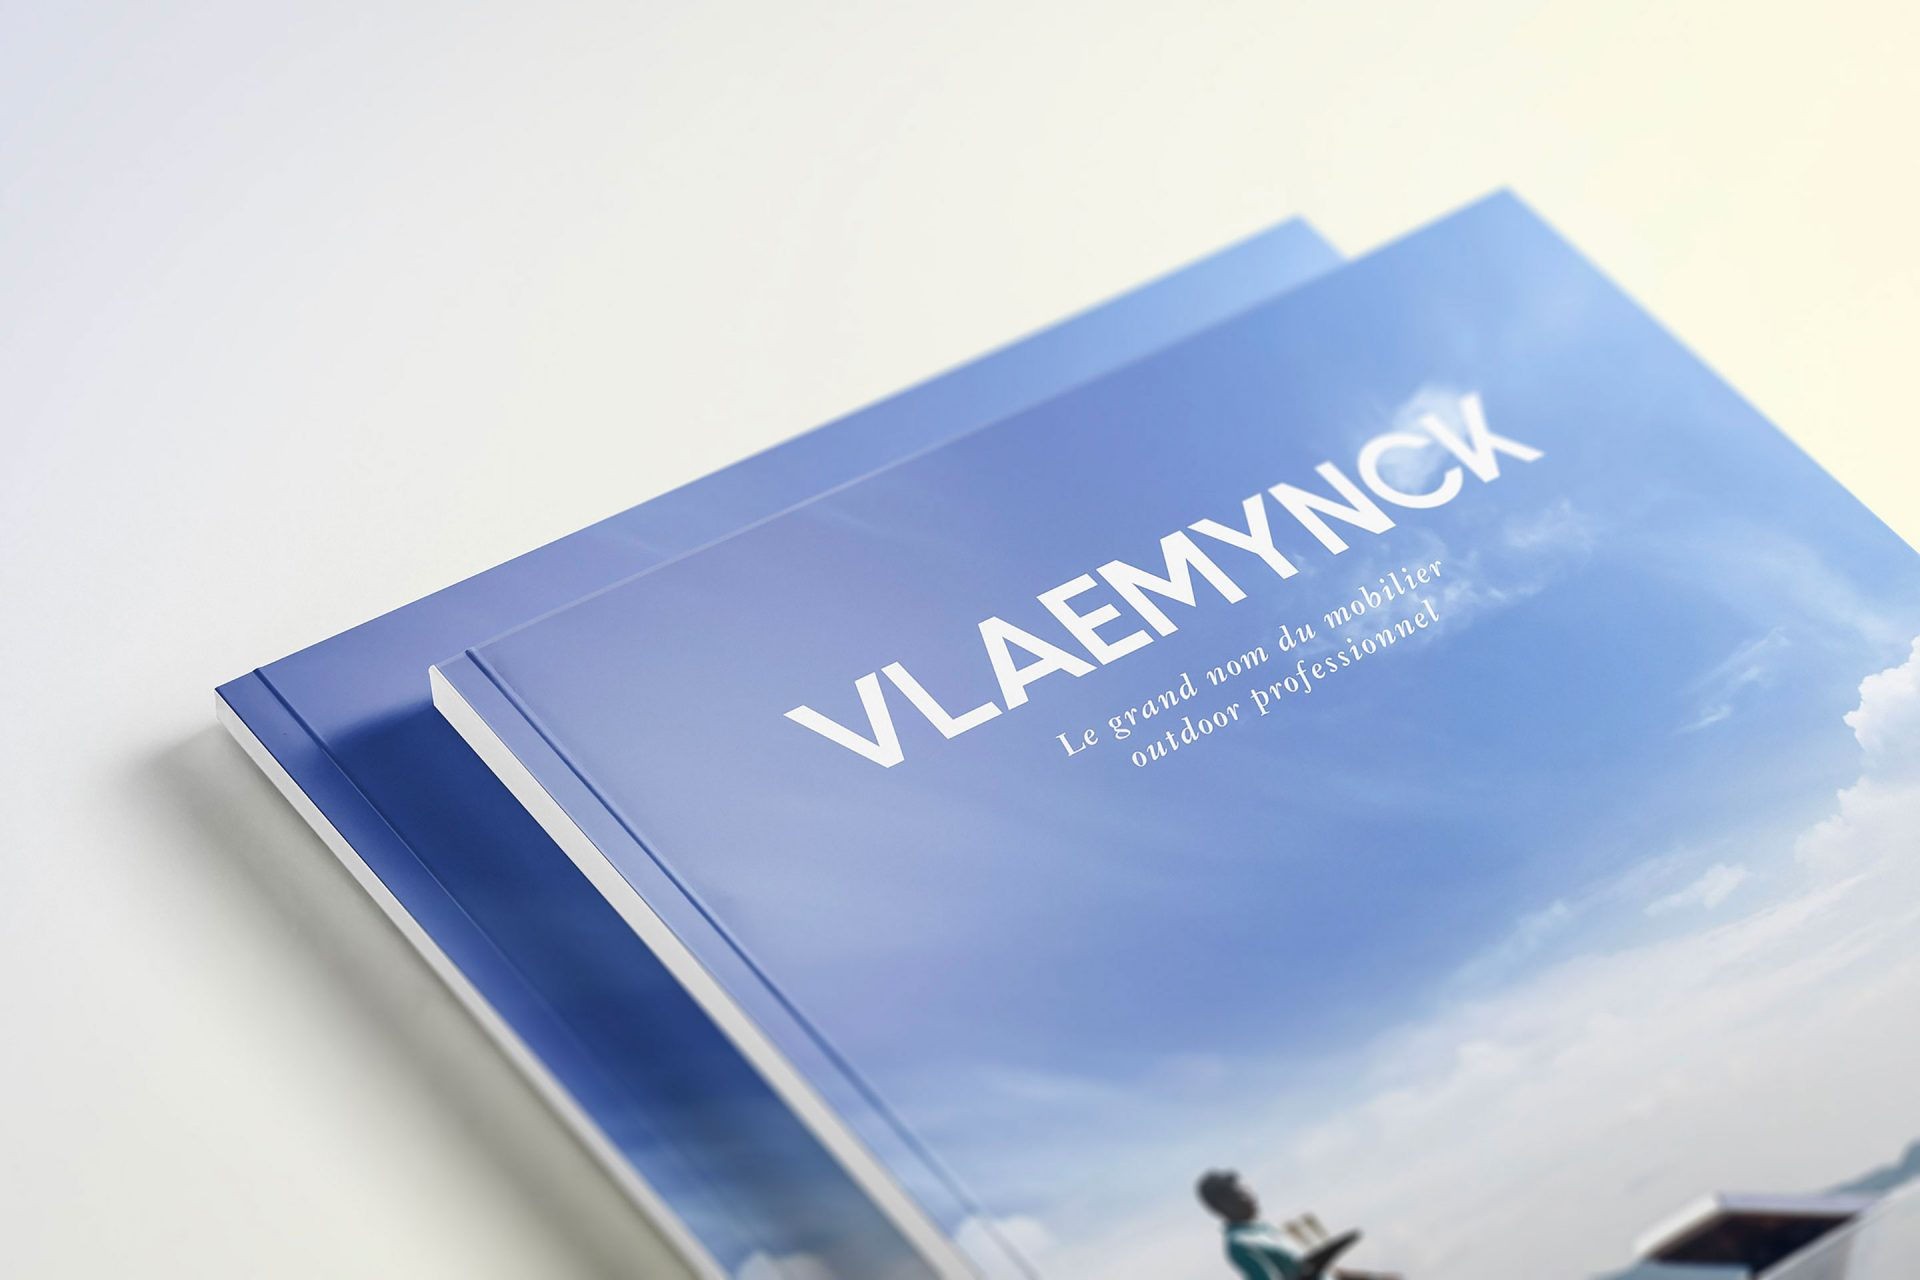 Édition / graphisme / shooting pour le magazine / catalogue contract professionnel de Vlaemynck